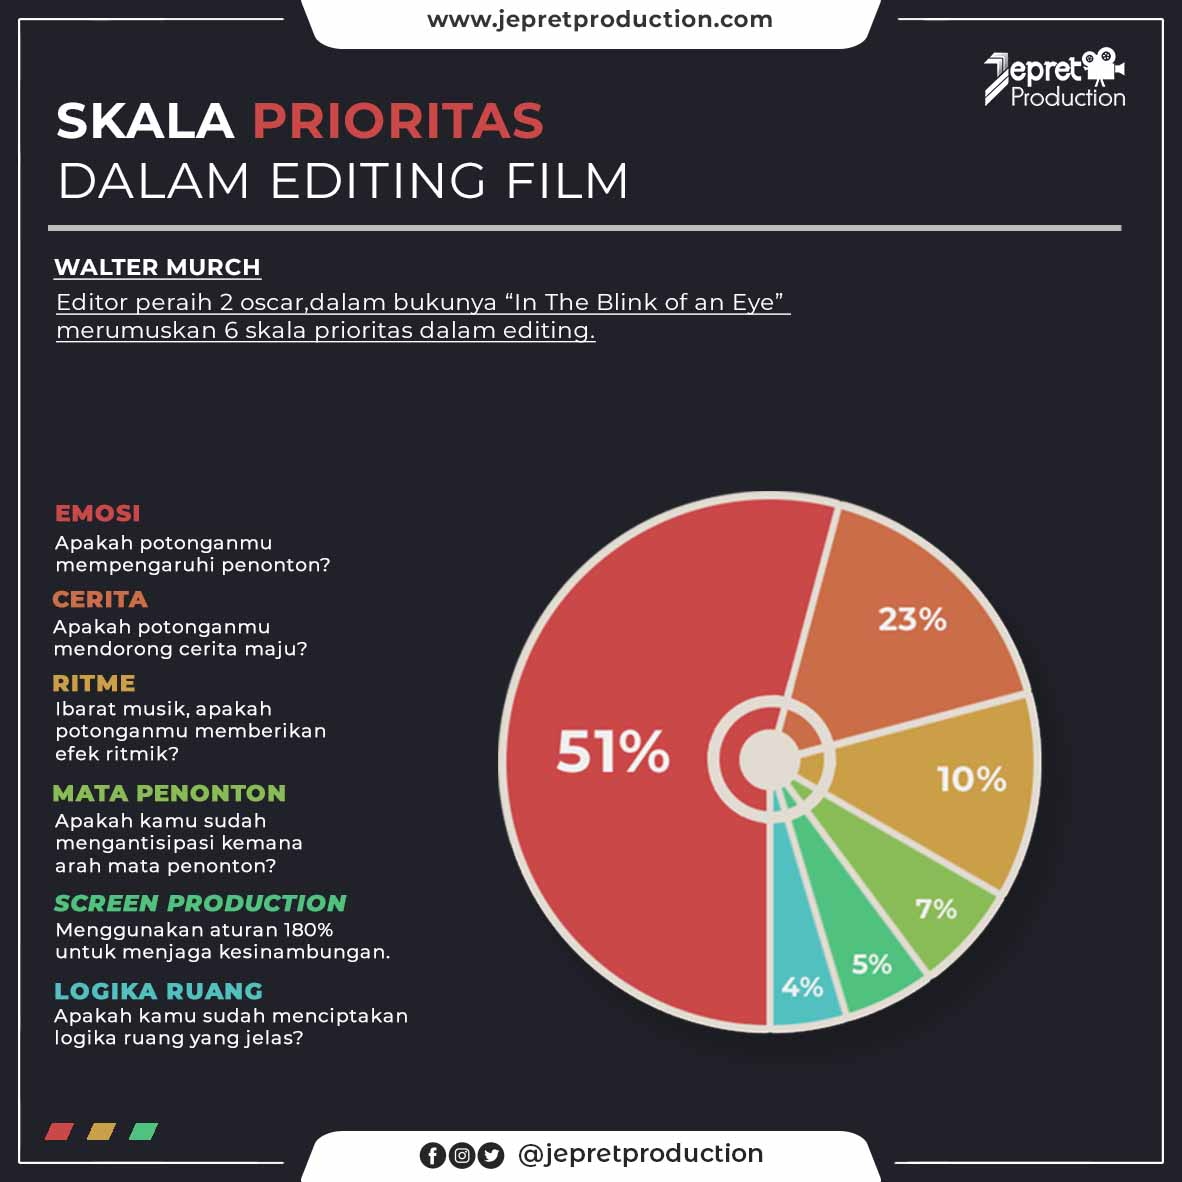 Skala Prioritas dalam Editing Film